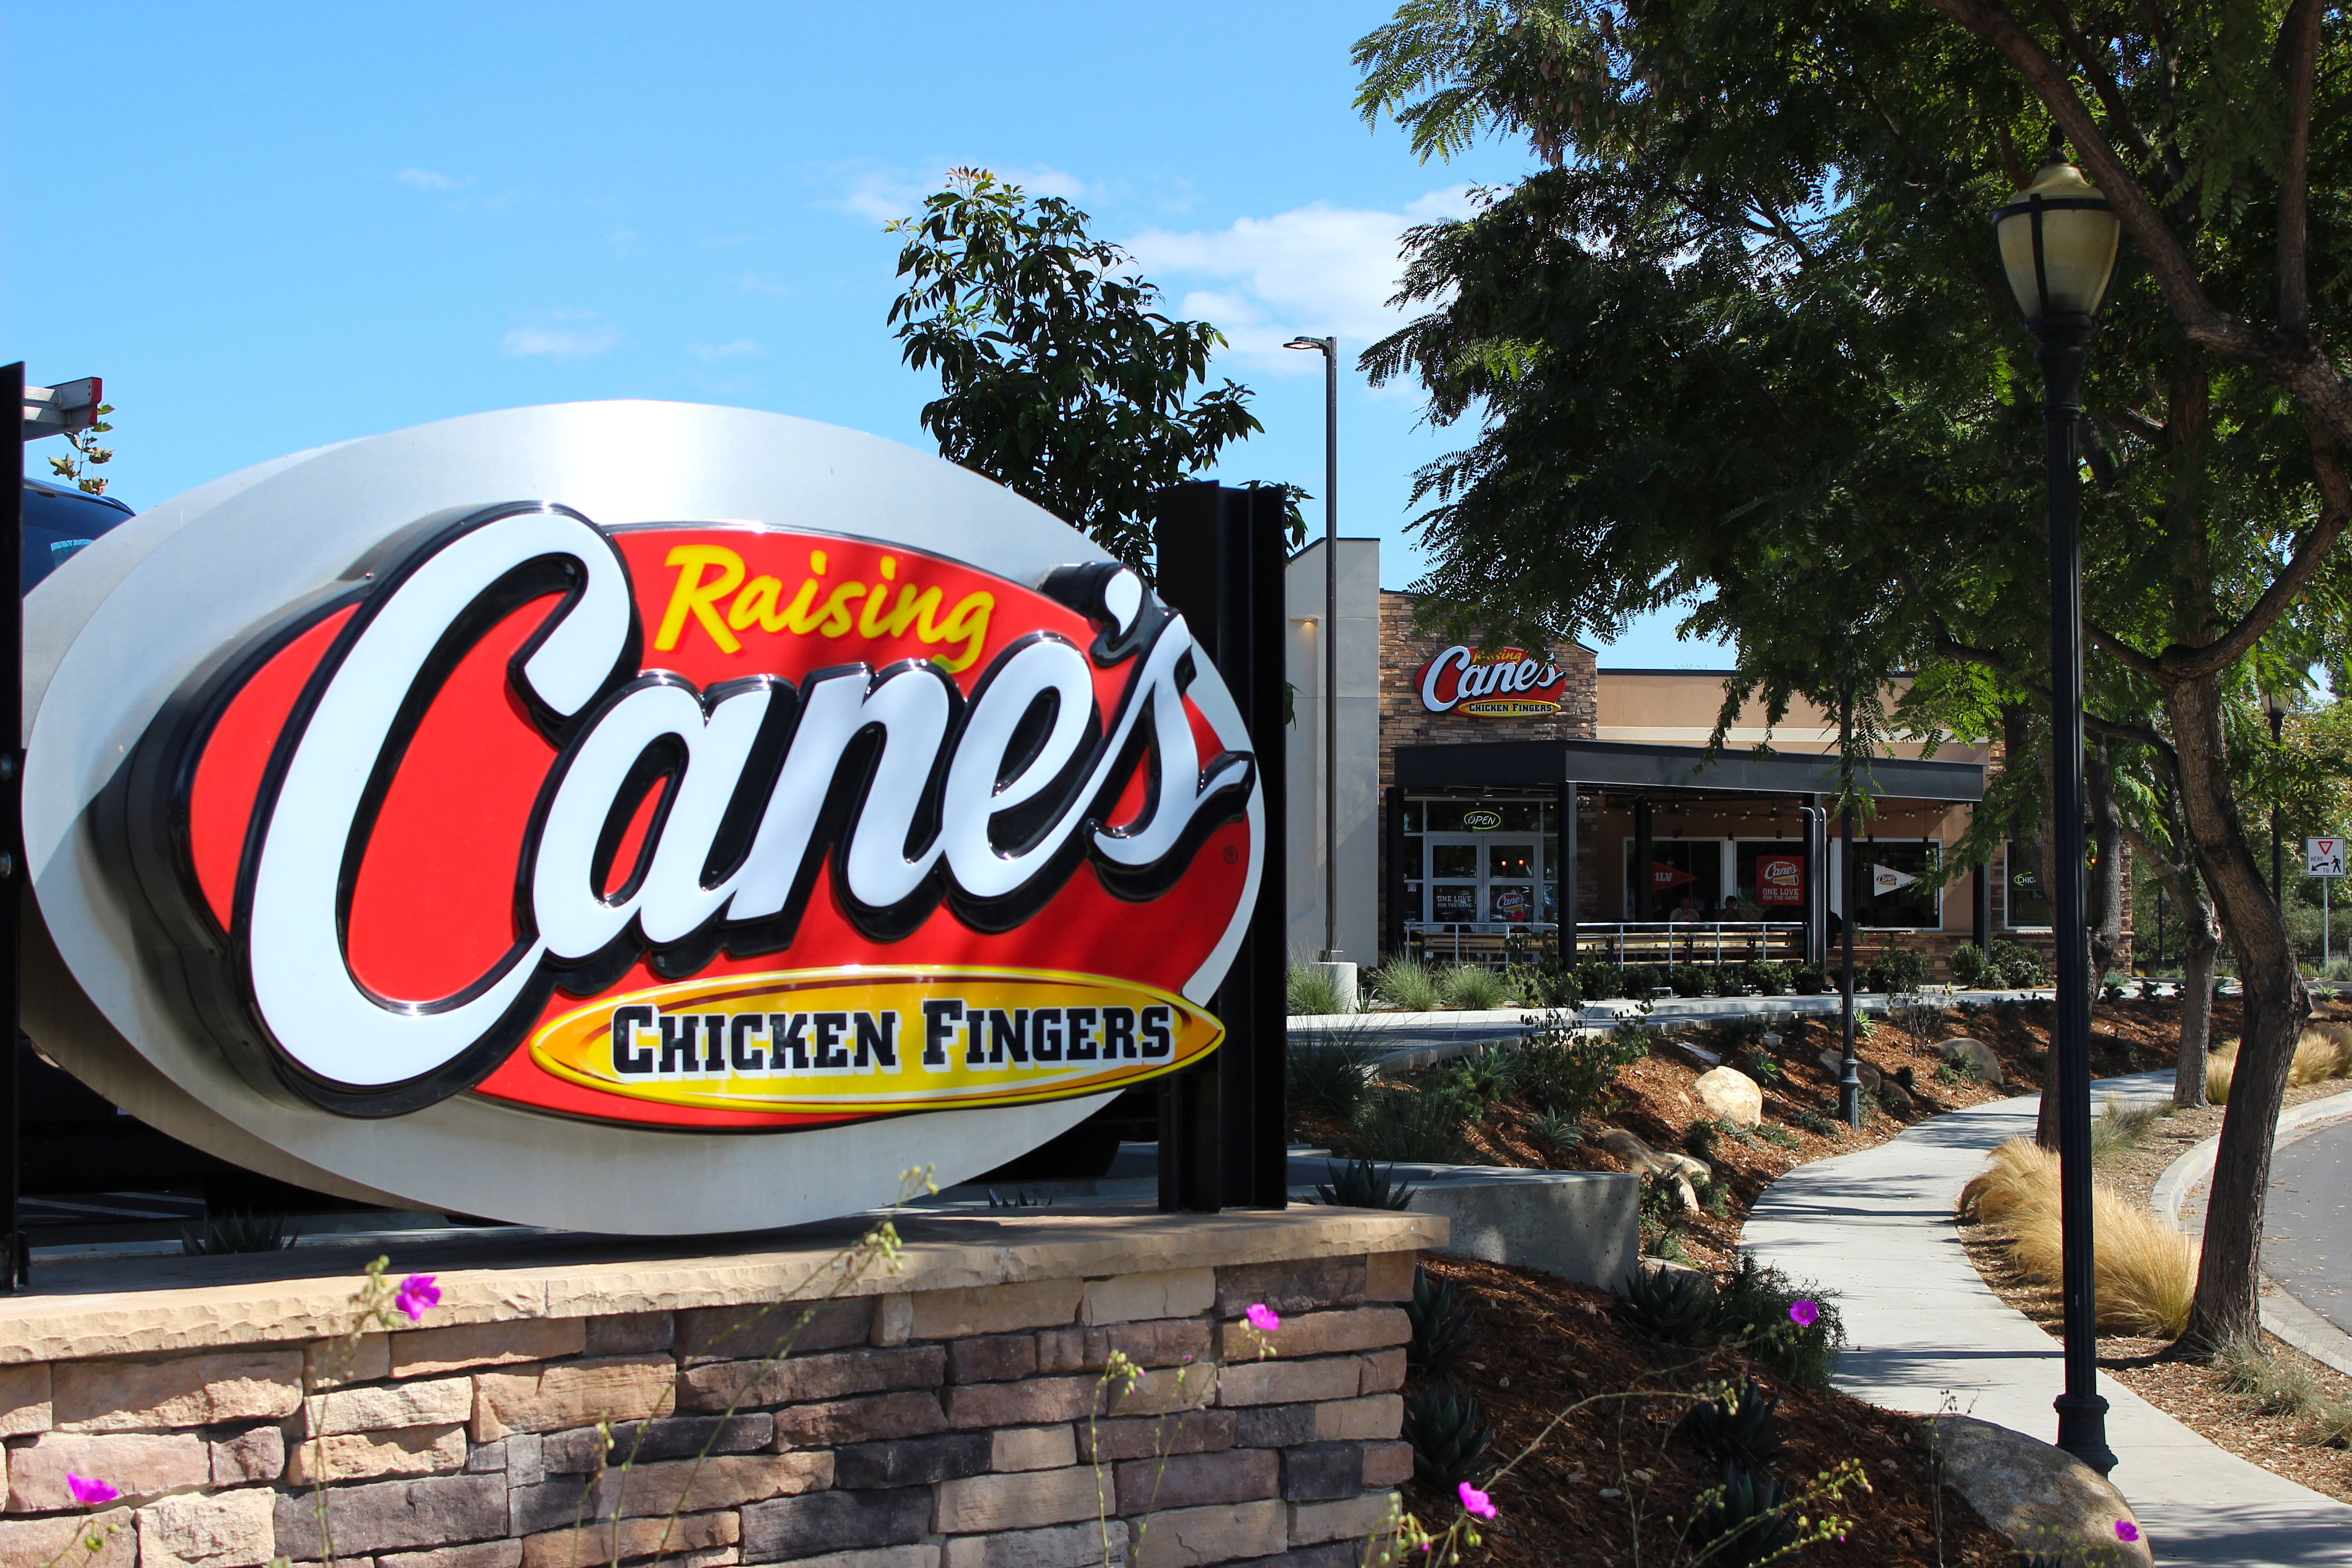 A Raising Cane's sign sits in the forefront of a Raising Cane's restaurant